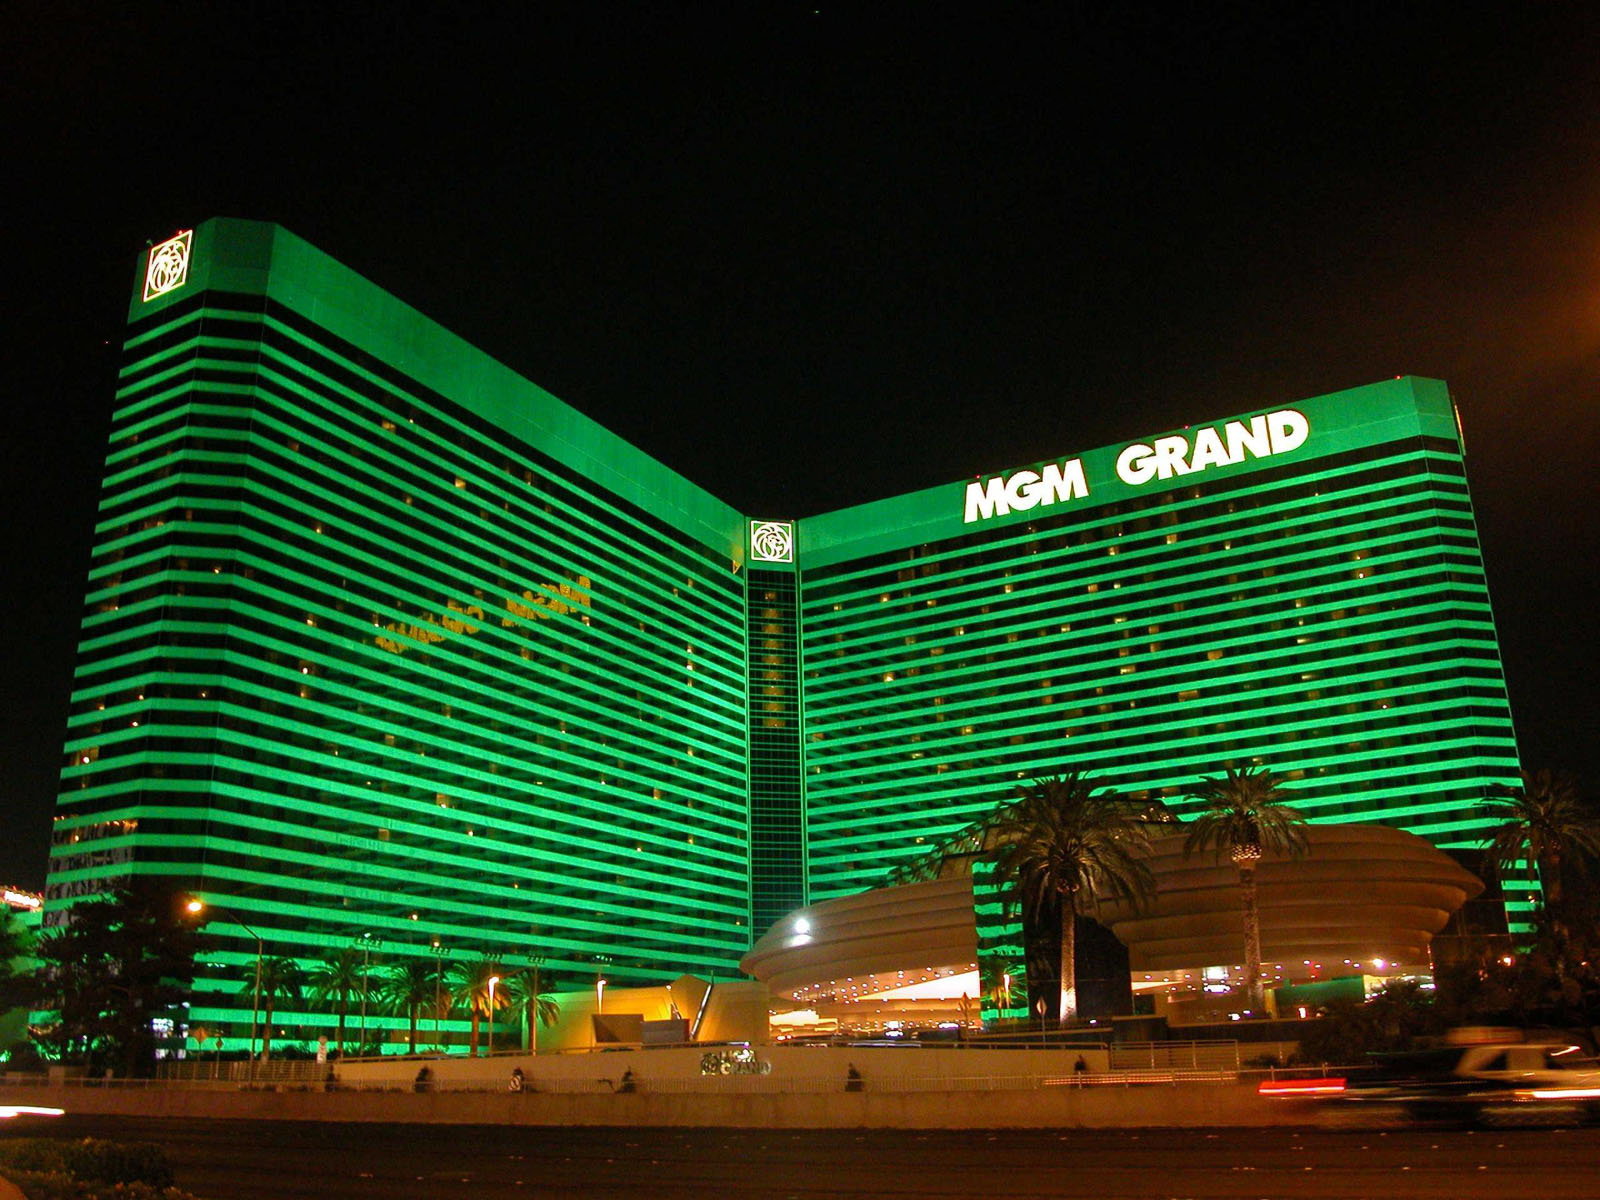 mgm grand hotel Book mgm grand hotel and casino, las vegas on tripadvisor: see 17,268 traveller reviews, 7,413 candid photos, and great deals for mgm grand hotel and casino, ranked #99 of 266 hotels in las vegas and rated 4 of 5 at tripadvisor.